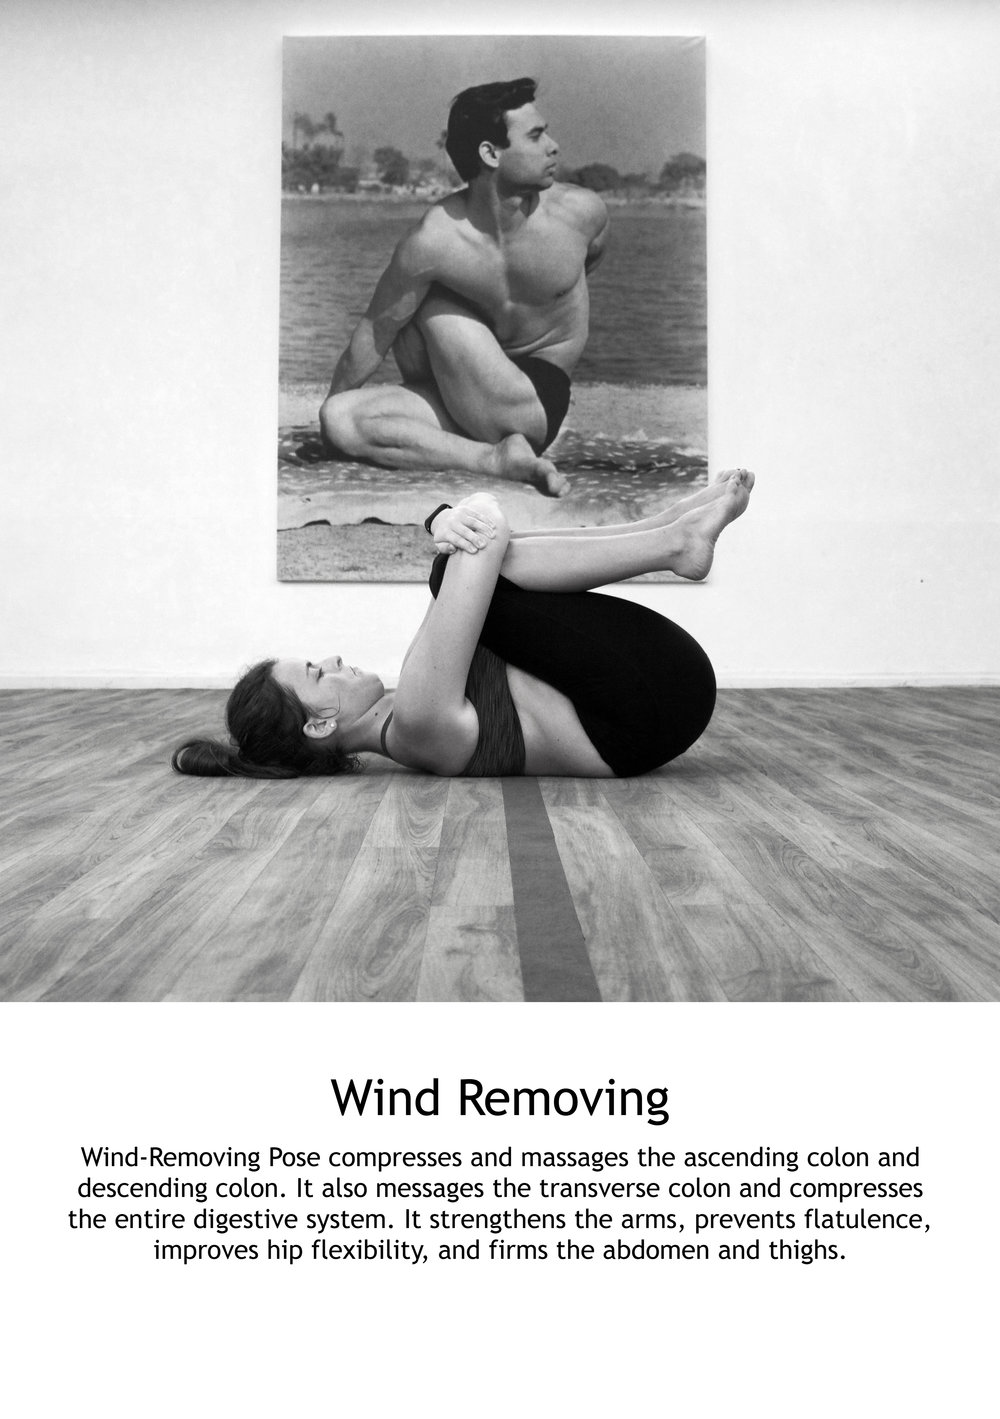 Wind Removing